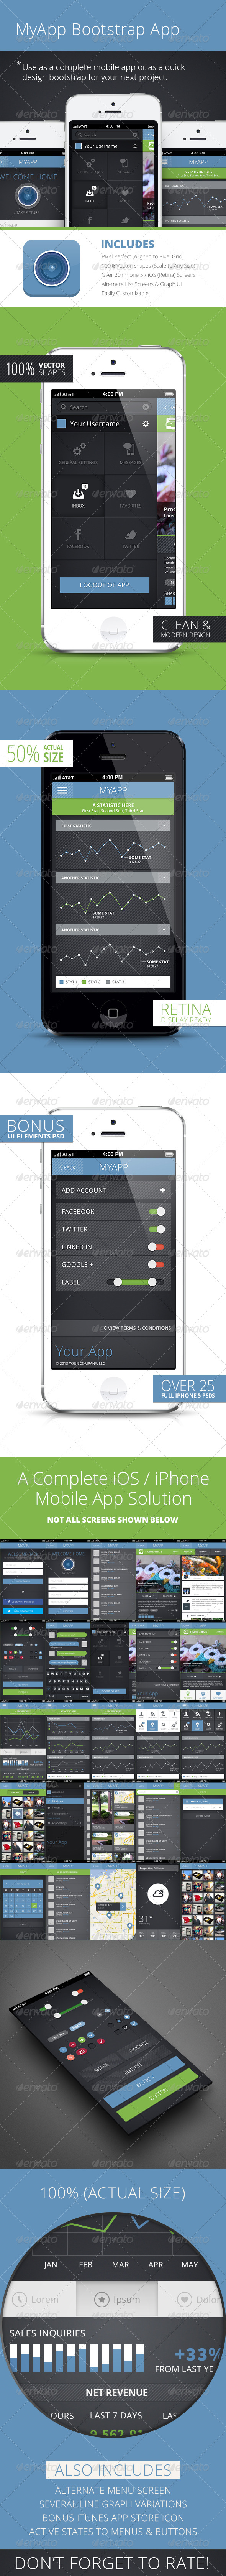 GraphicRiver My App Bootstrap Mobile Phone UI App 4851675